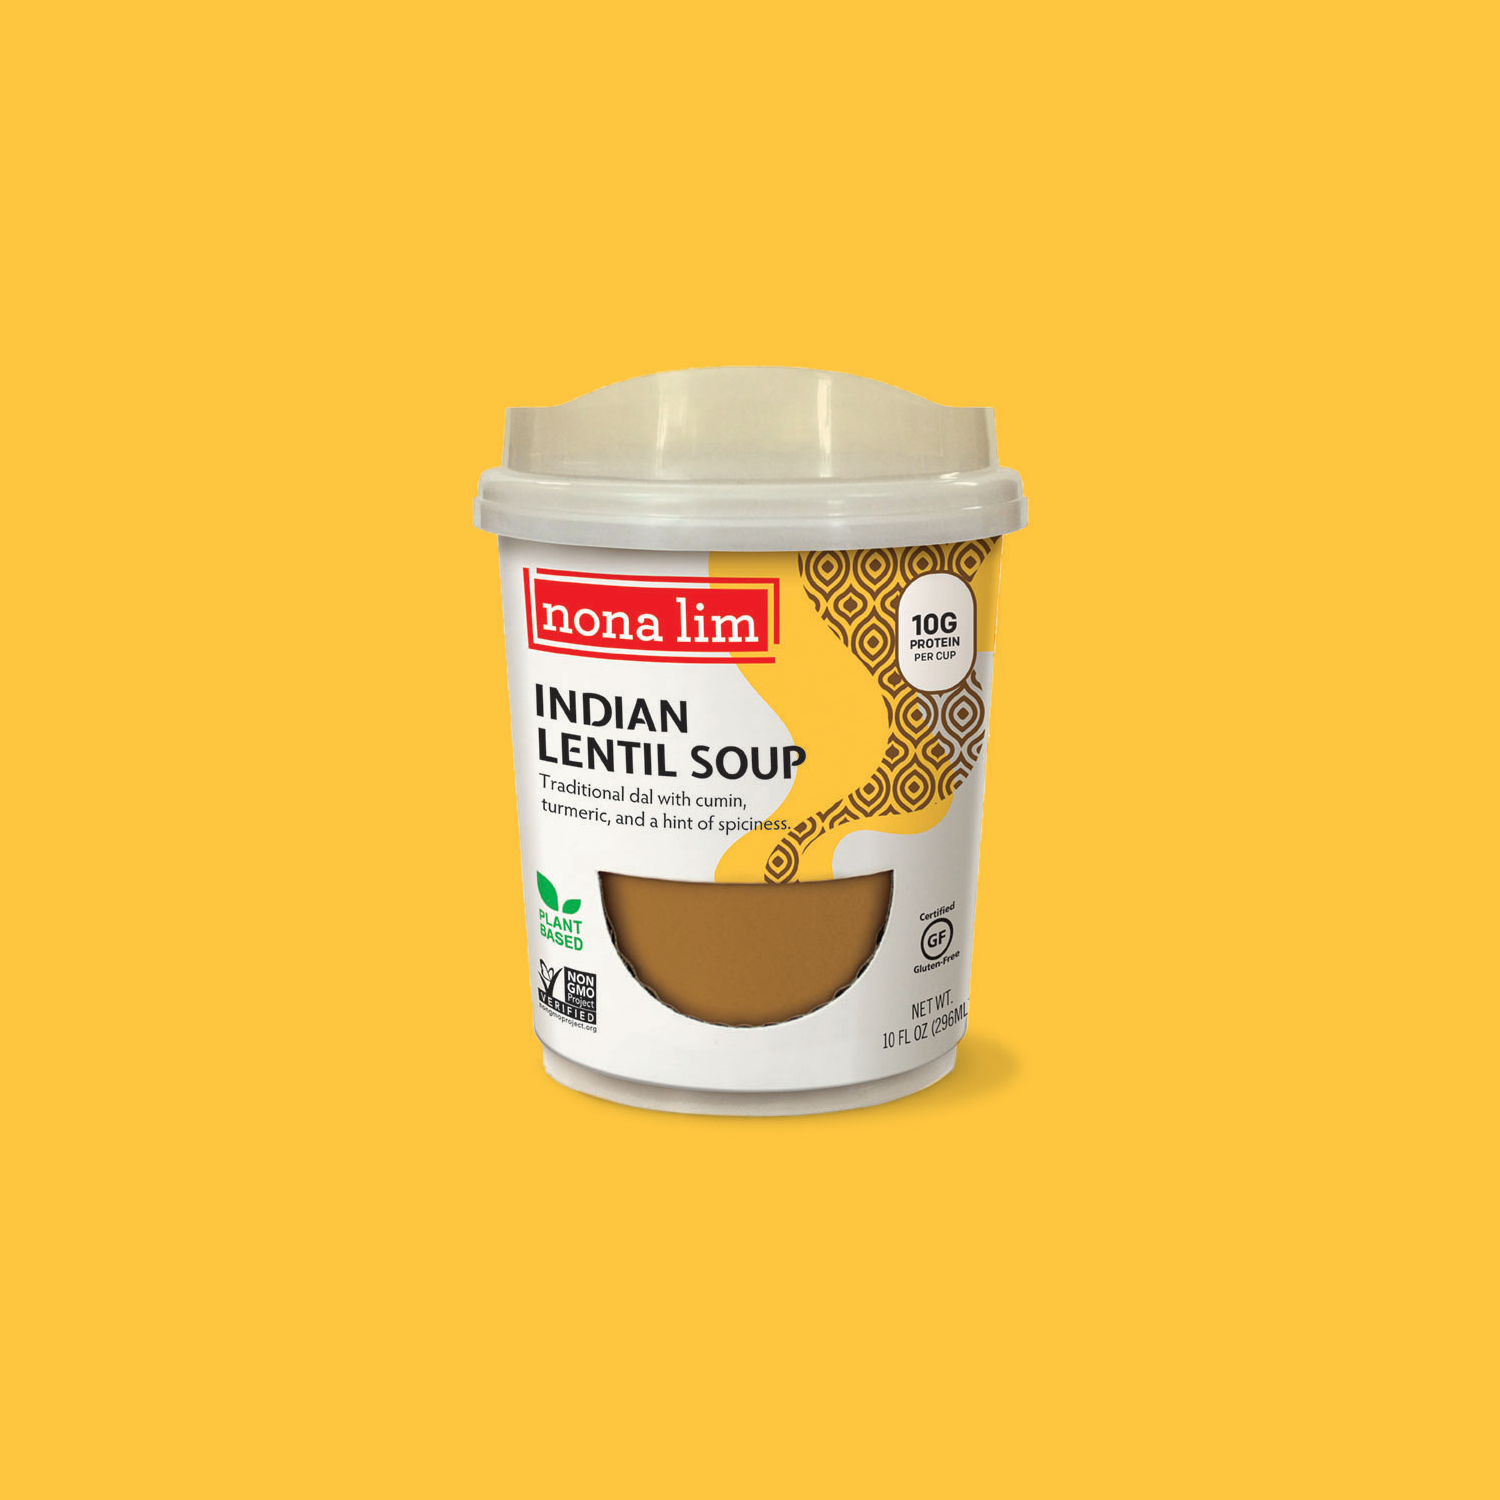 Nona Lim Indian Lentil Soup, Heat and Sip Soup Cup. Vegan, Gluten free, Dairy free and Non GMO.